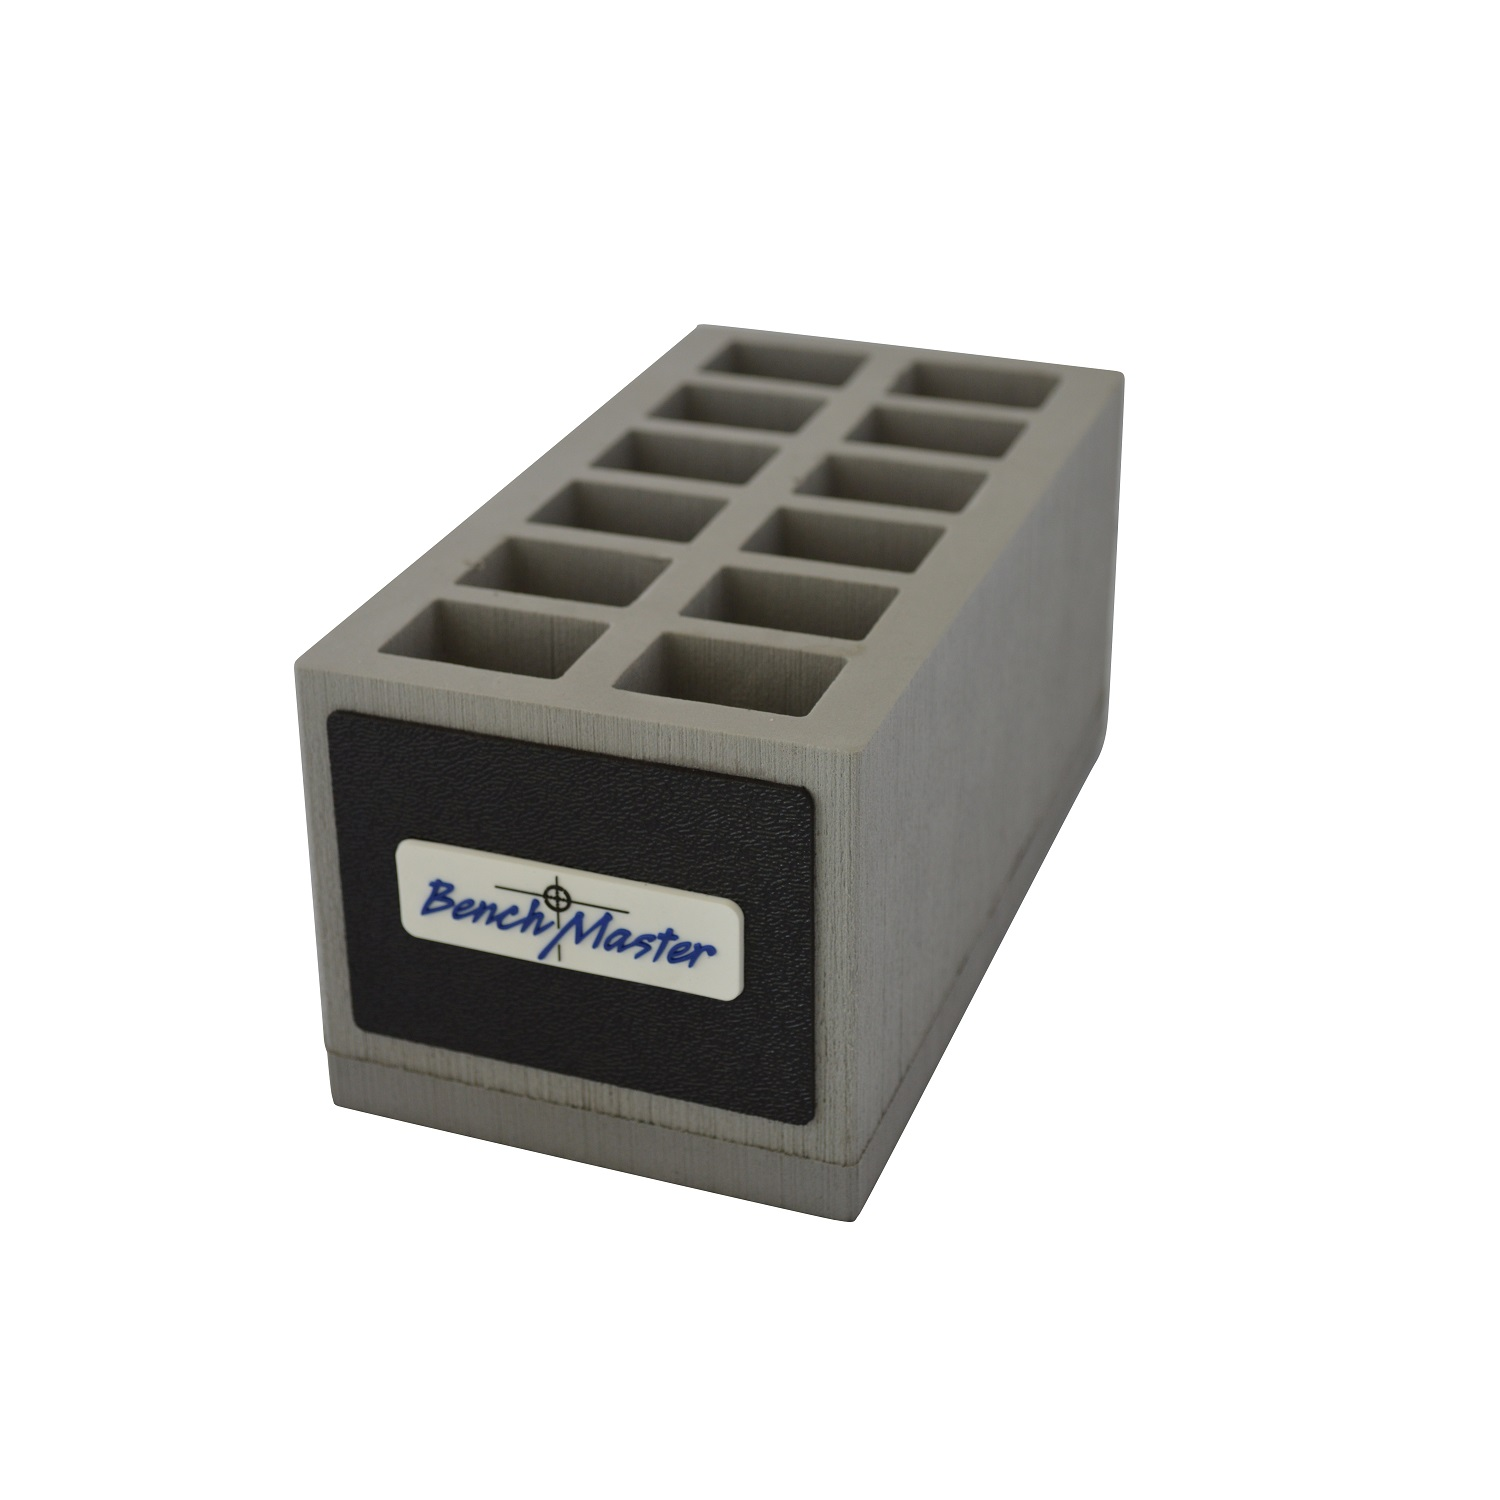 Benchmaster Double Stack 9mm Mag Rack-12